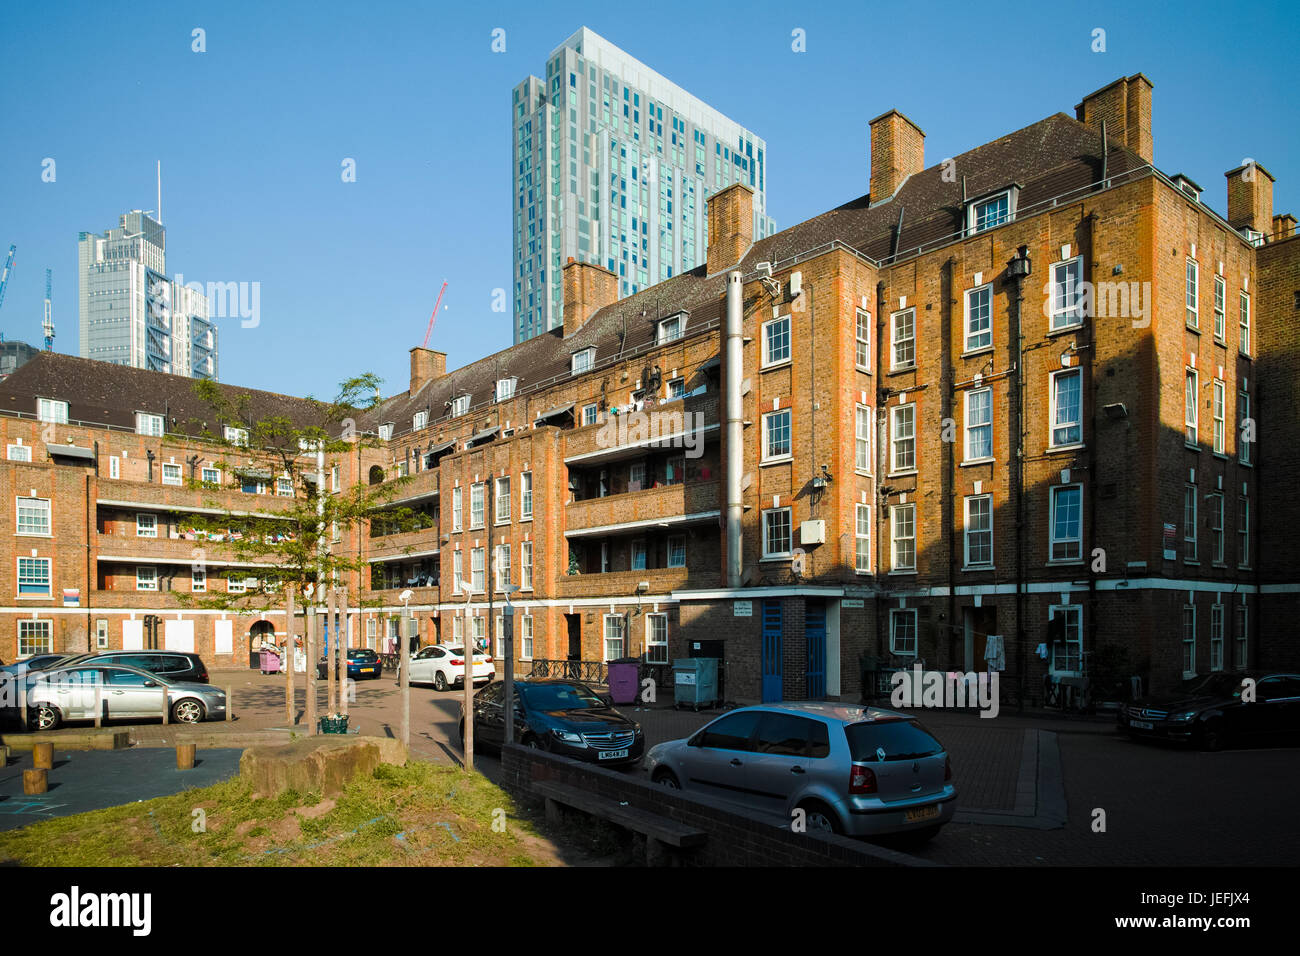 Brune House, near Petticoat Lane in Whitechapel, local authority housing close to the edge of the City of London - Stock Image